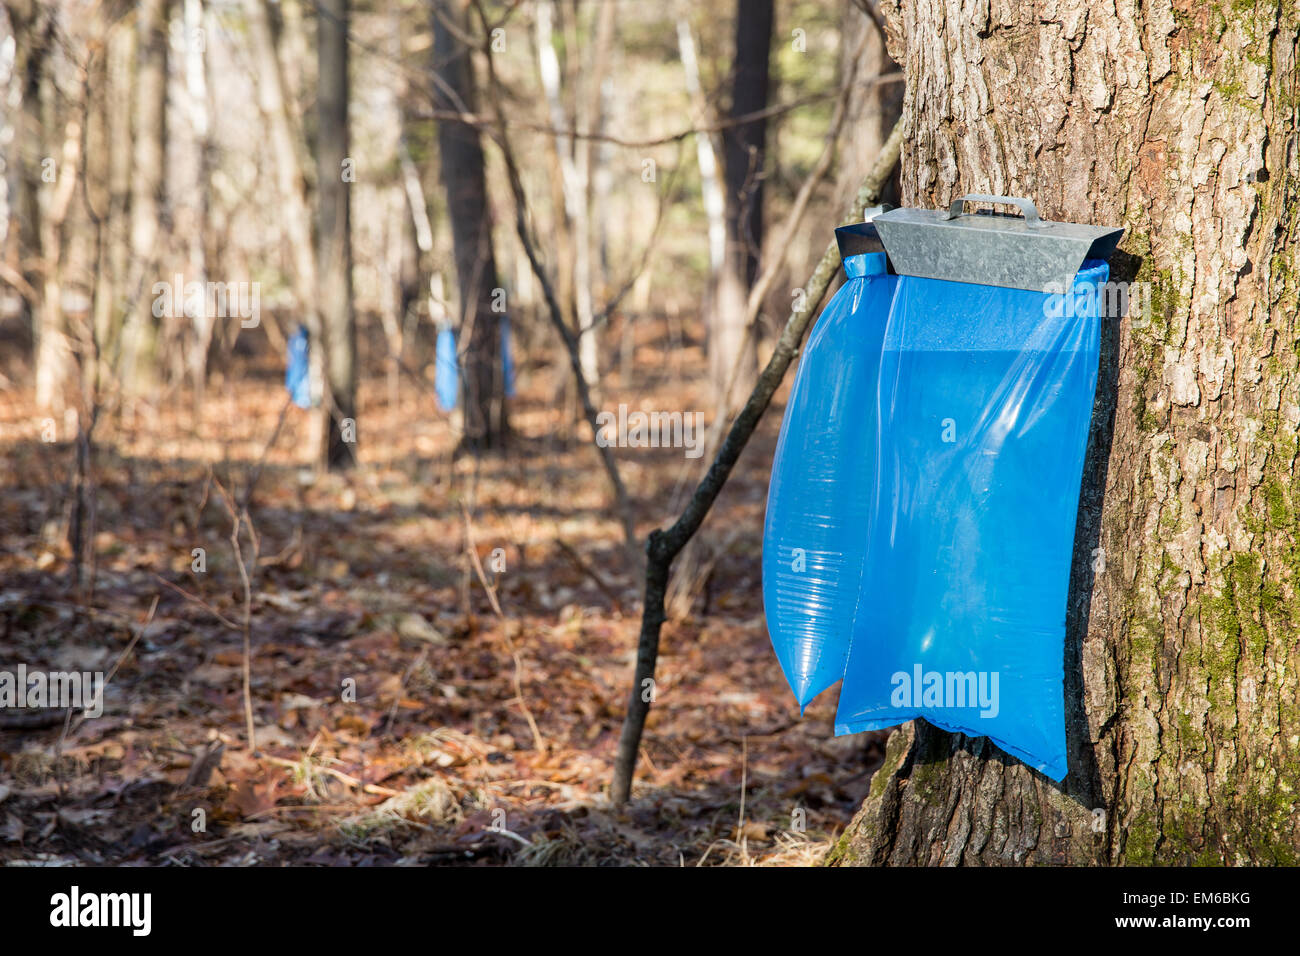 Tapping maple trees in the Spring to make maple syrup.  Selective focus on the bulging blue collection bags in the - Stock Image